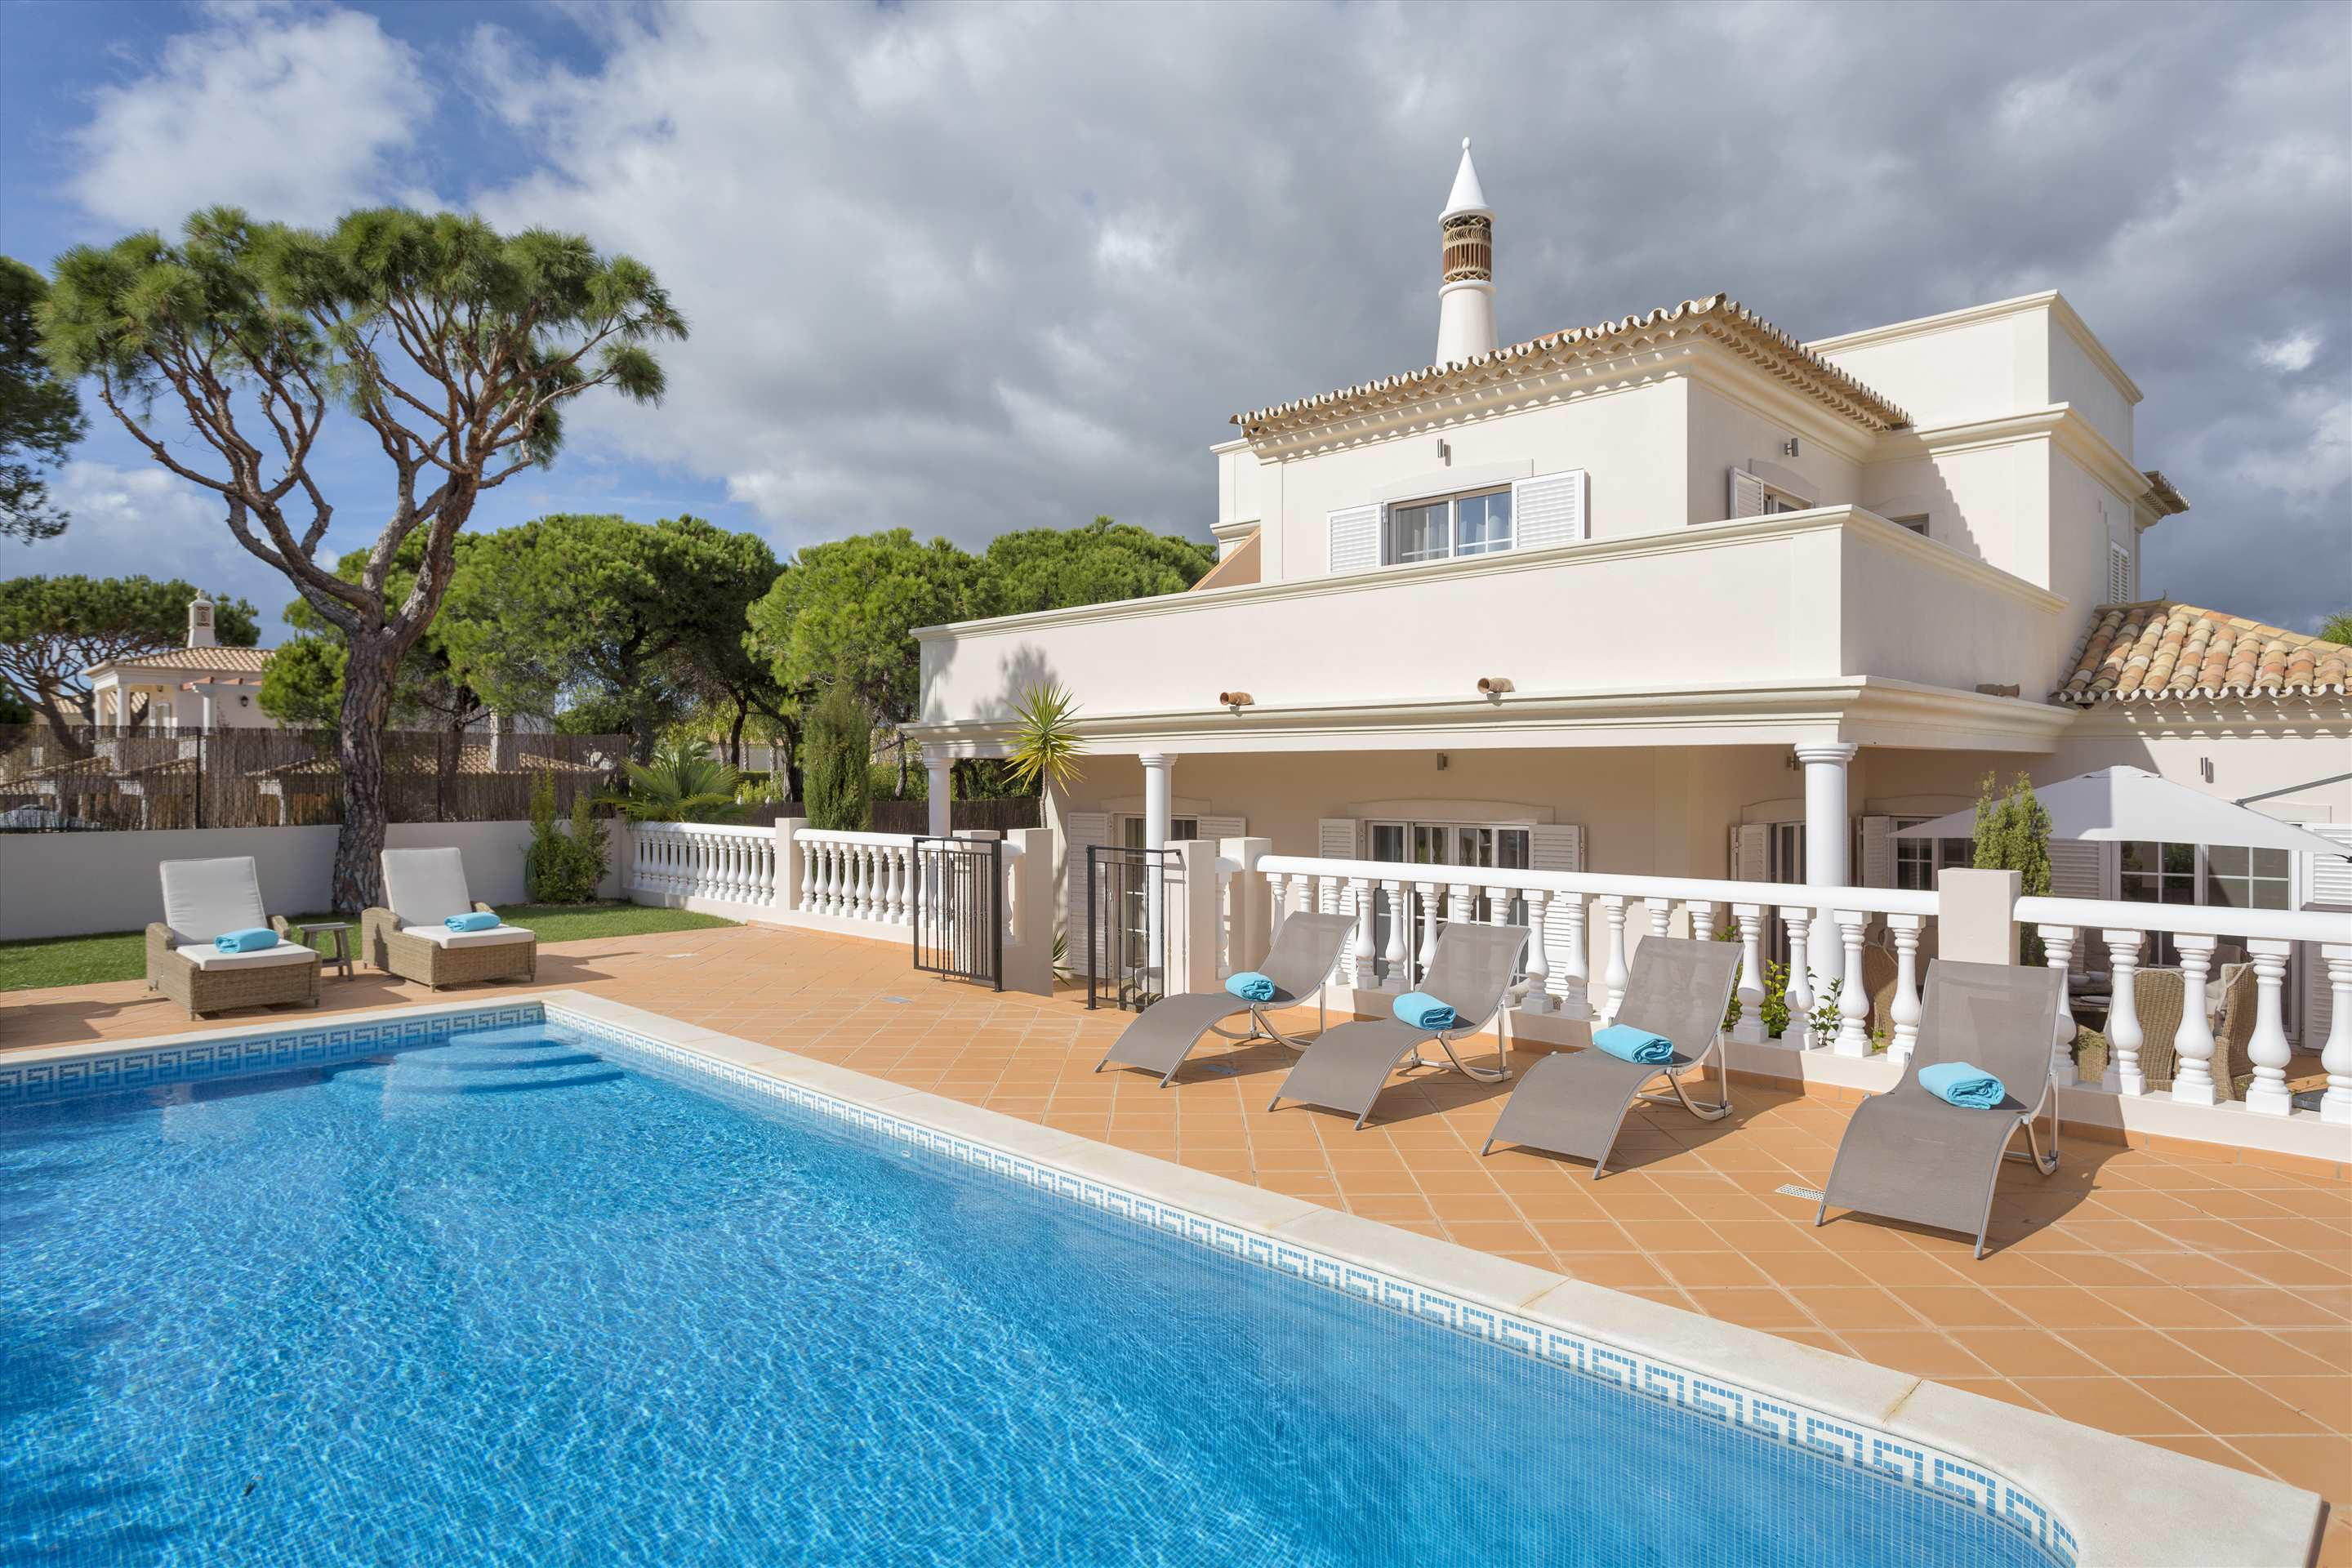 Villa Diana, 4 bedroom villa in Vale do Lobo, Algarve Photo #1